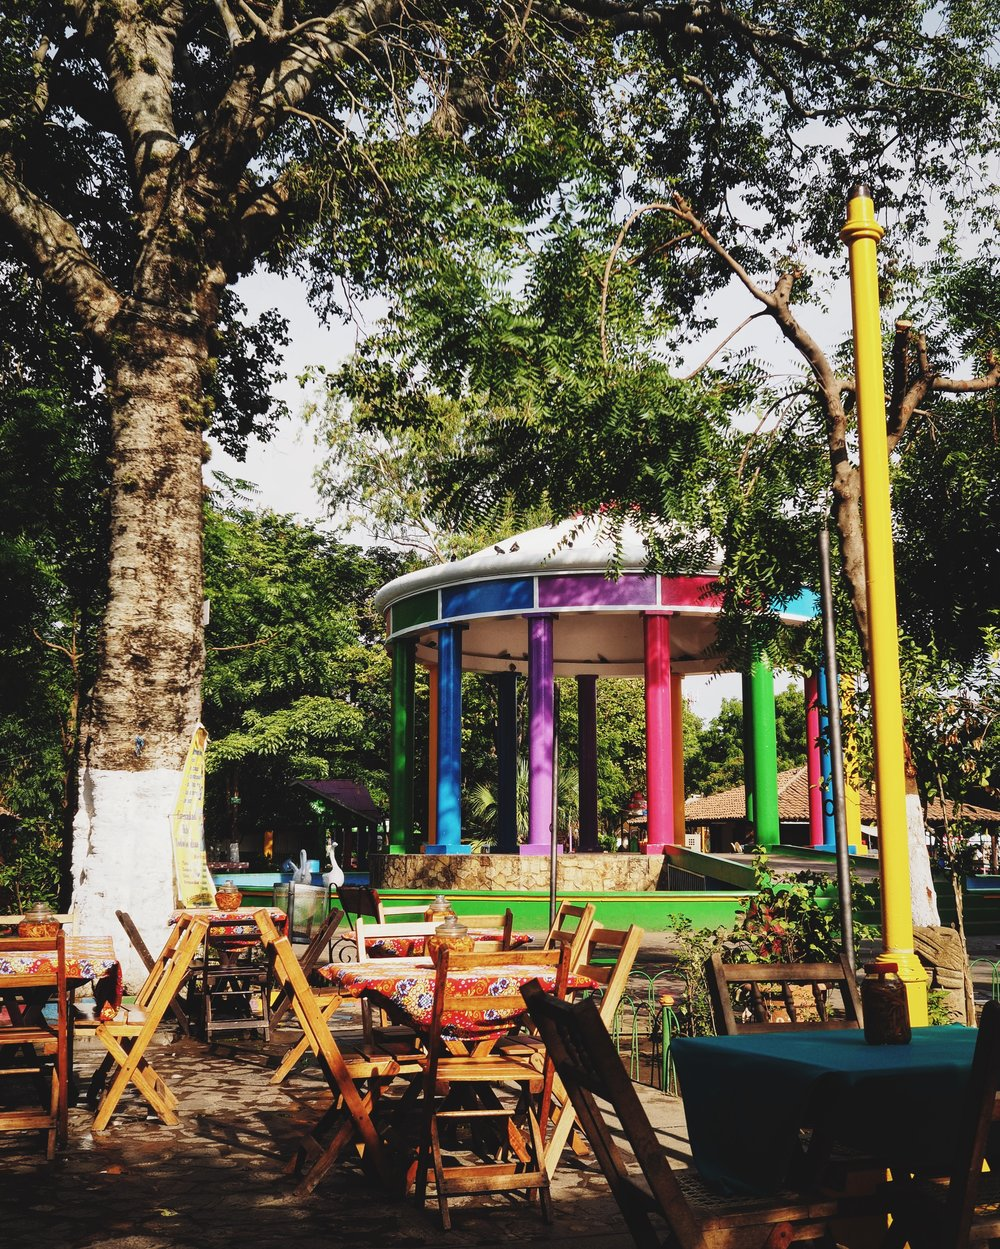 Colorful Central Park of Masaya